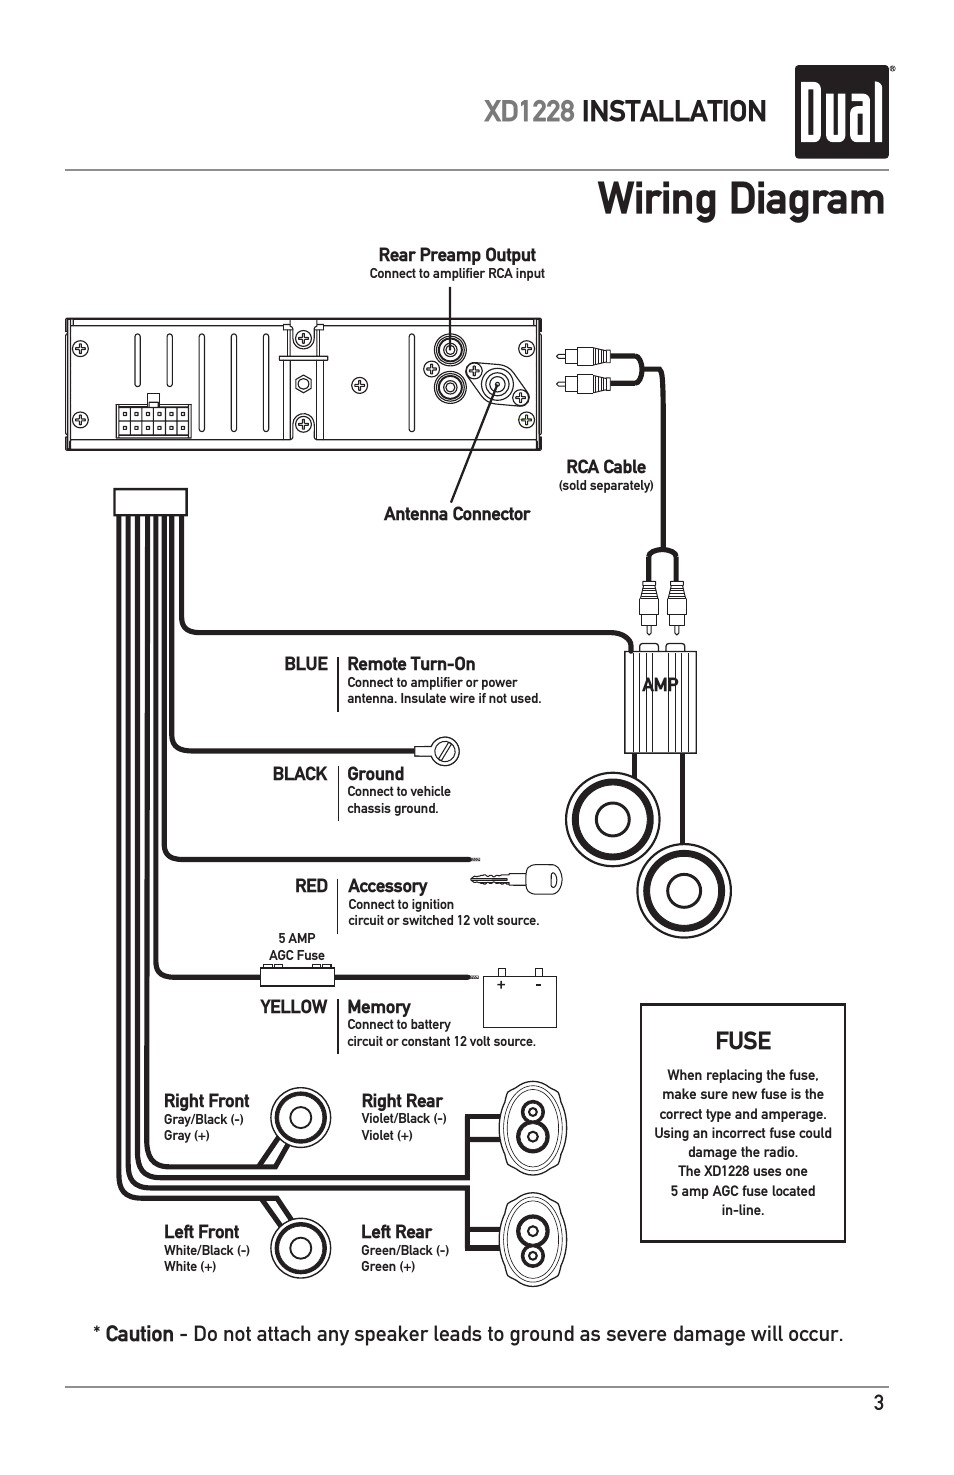 aftermarket stereo wiring harness diagram zs 2898  radio wiring harness aftermarket get free image about  radio wiring harness aftermarket get